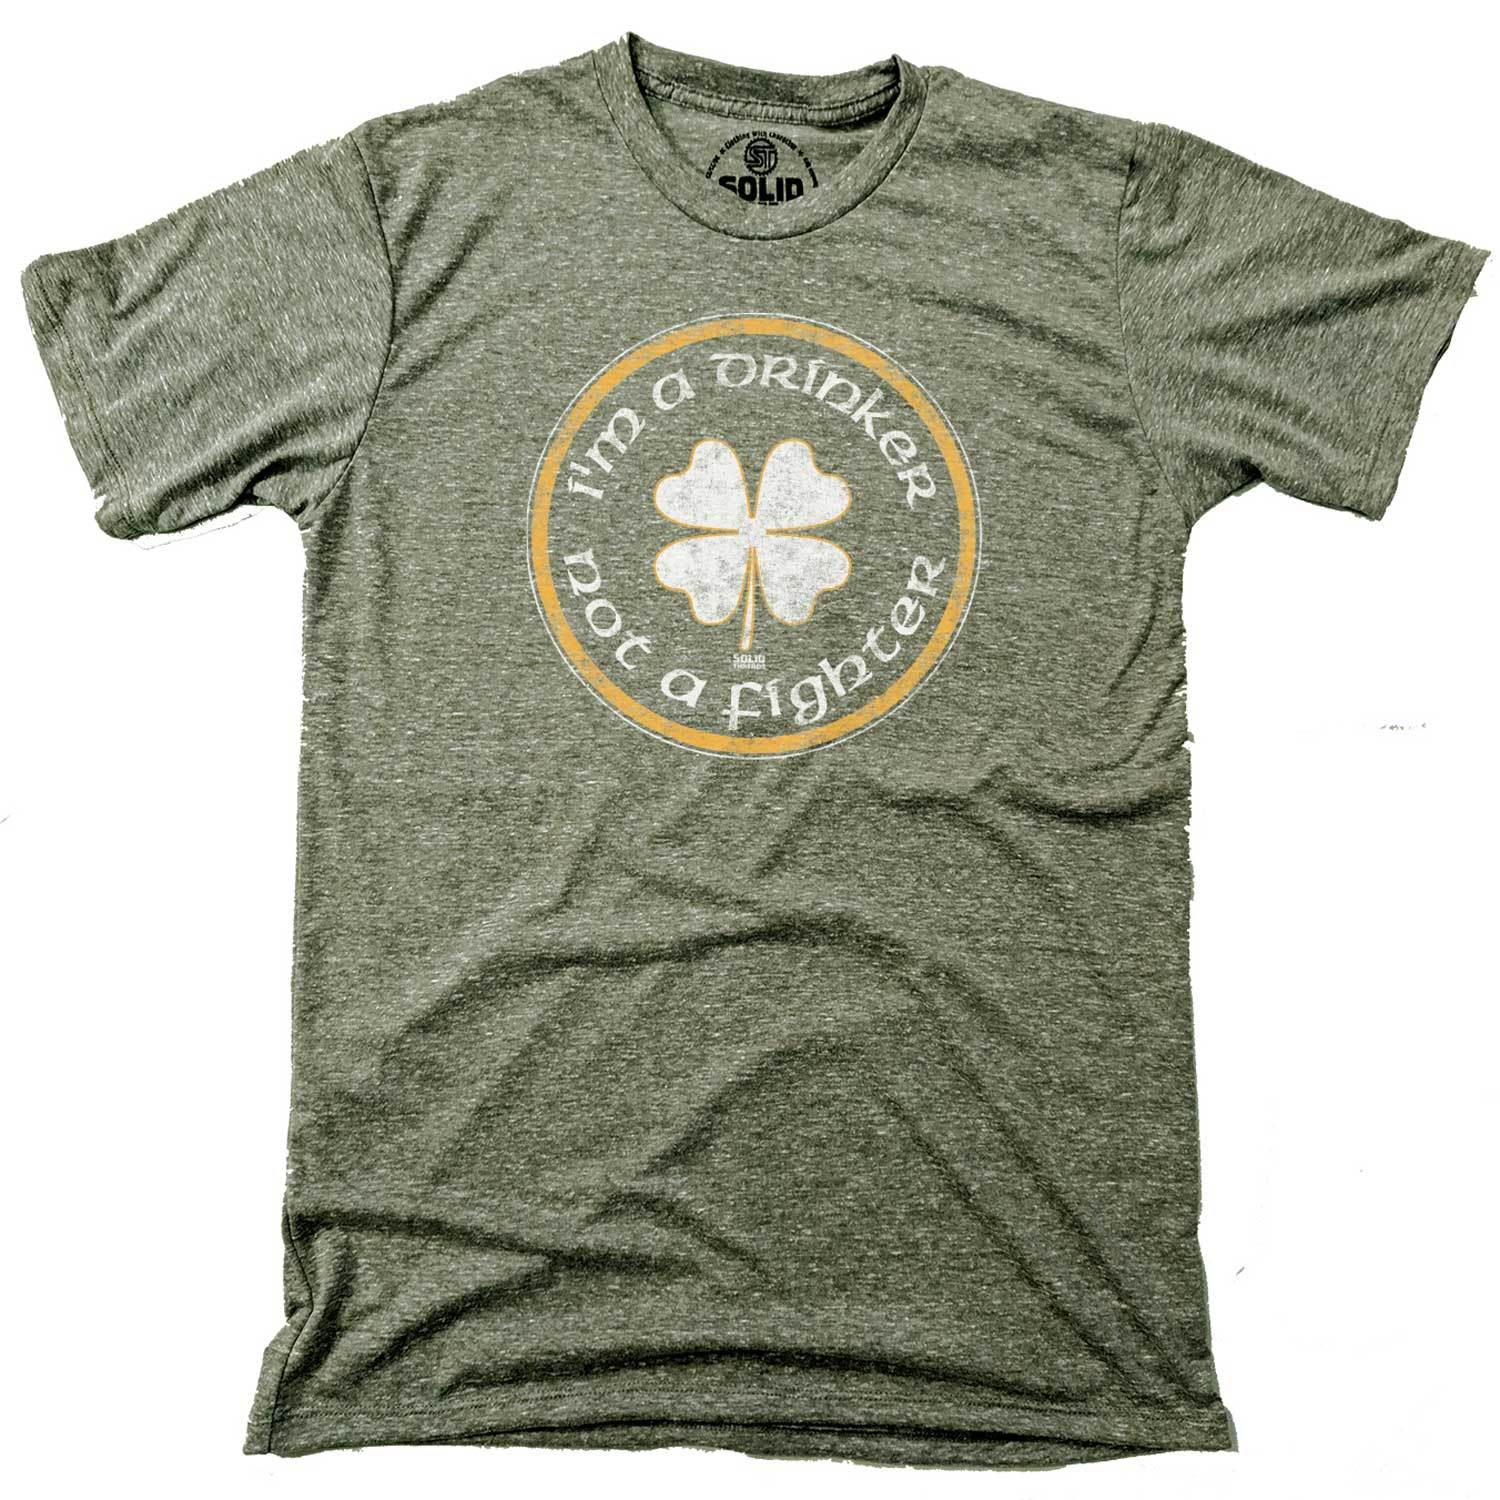 Men's I'm a Drinker Note a Fighter Vintage Inspired Triblend Olive T-shirt with cool, St. Paddy's graphic | Solid Threads